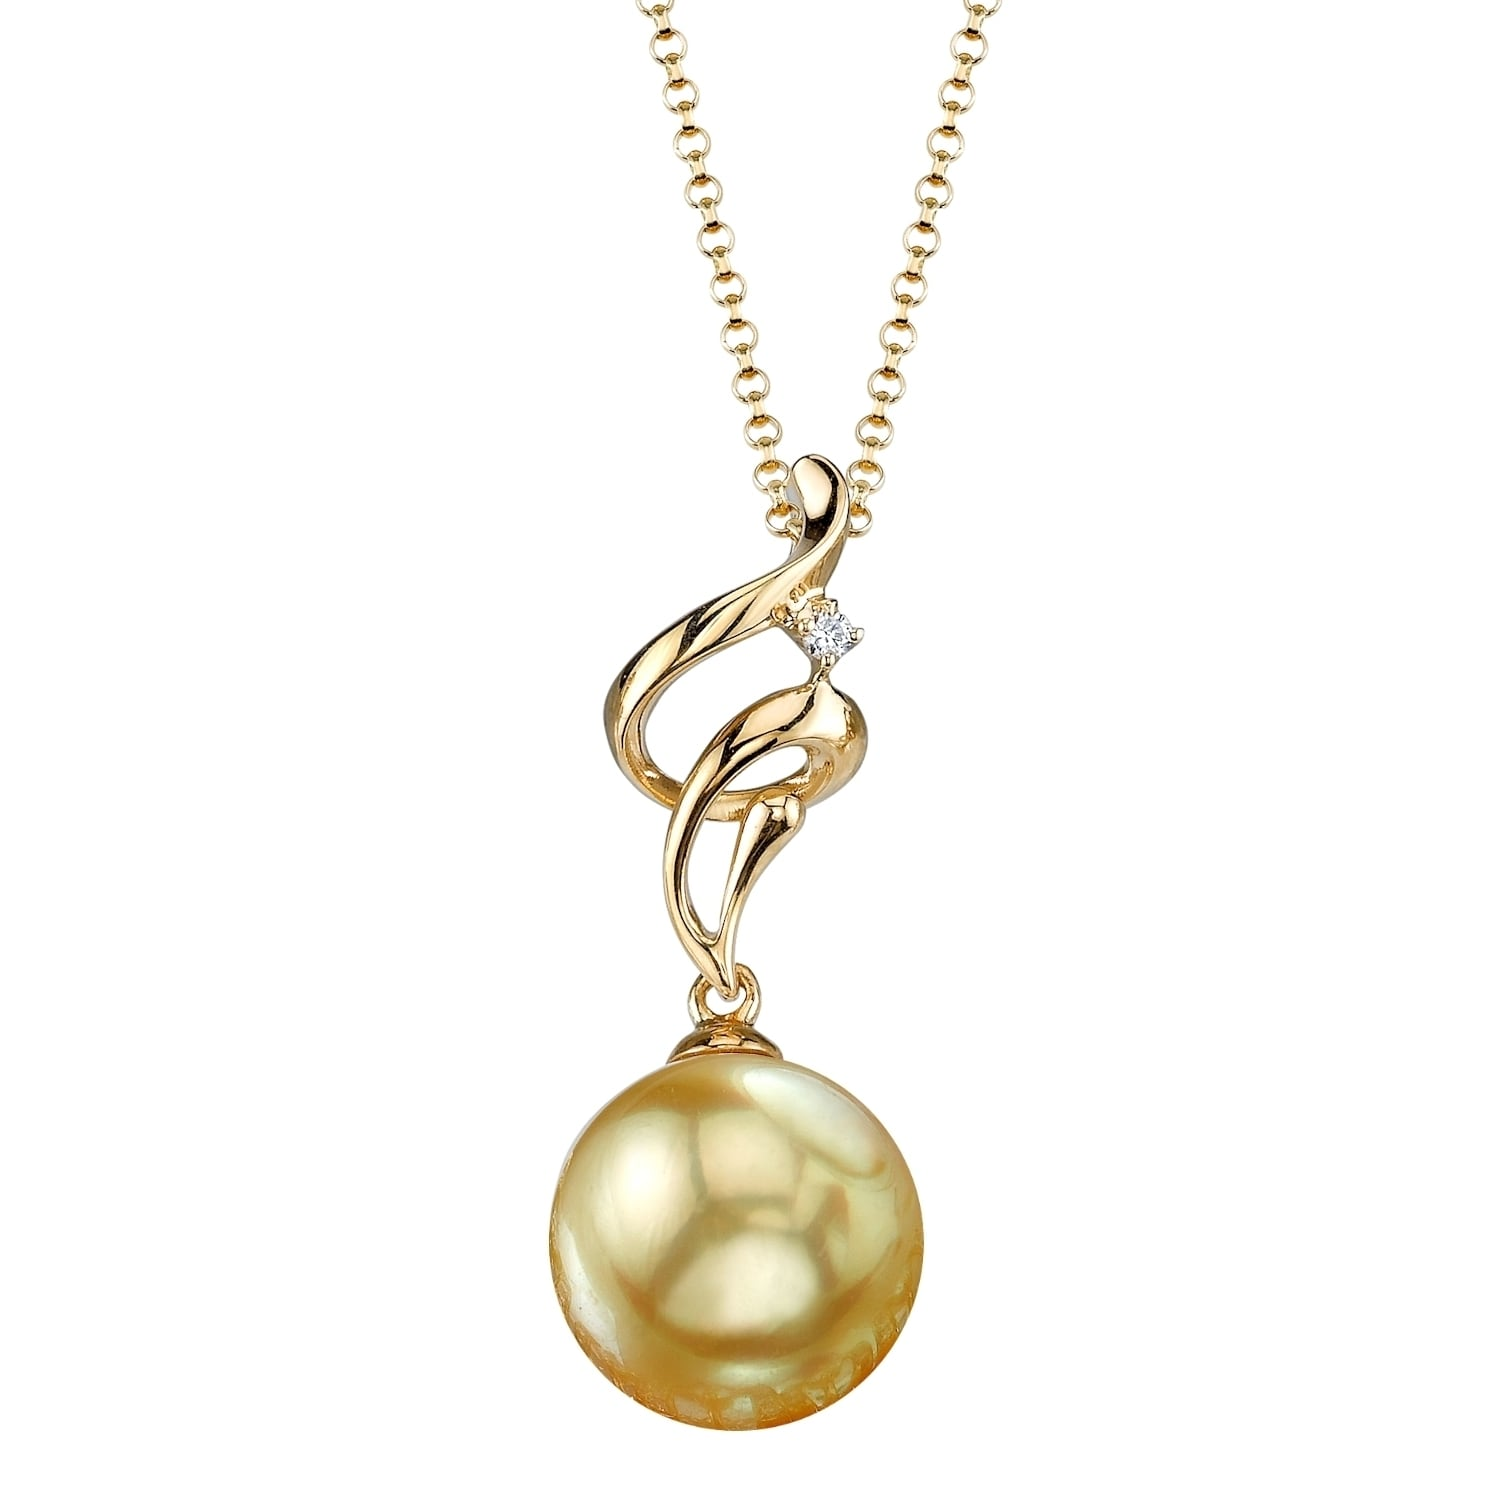 cbf1e5c91cc5a Radiance Pearl 18k Yellow Gold Golden South Sea Pearl Diamond Accent  Pendant (9-10mm, 10-11 mm)